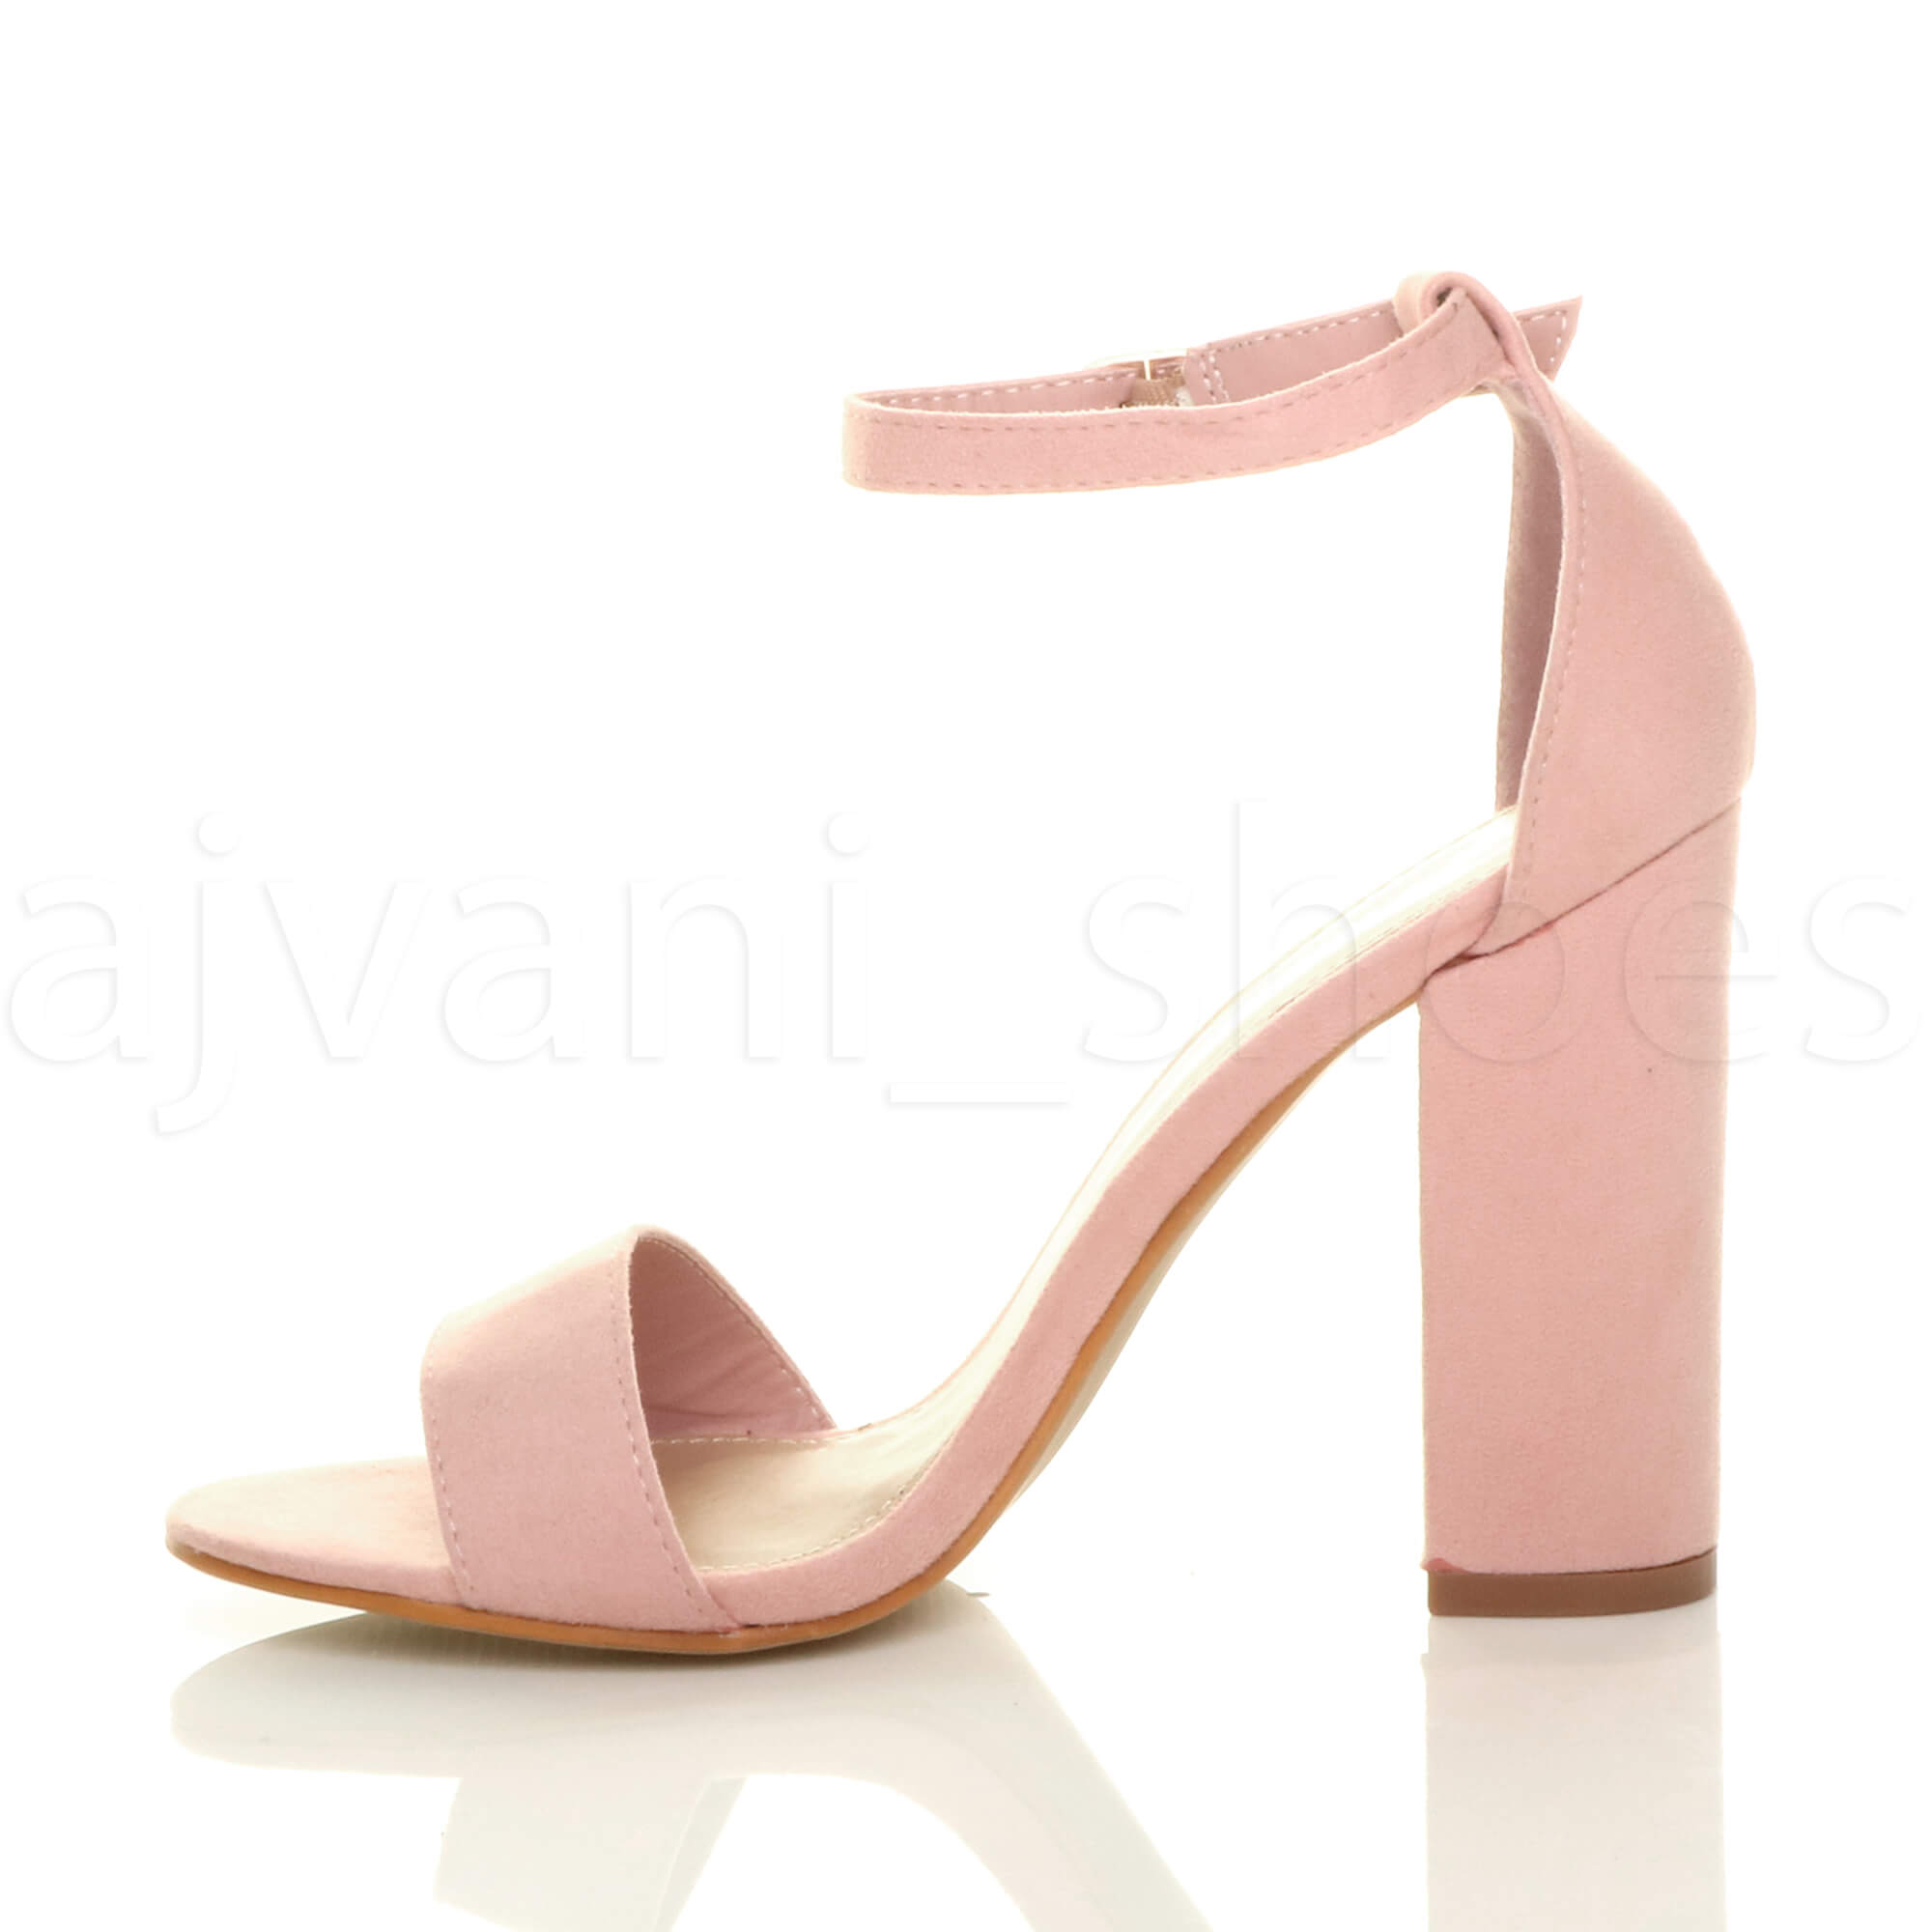 WOMENS-LADIES-BLOCK-HIGH-HEEL-ANKLE-STRAP-PEEP-TOE-STRAPPY-SANDALS-SHOES-SIZE thumbnail 104